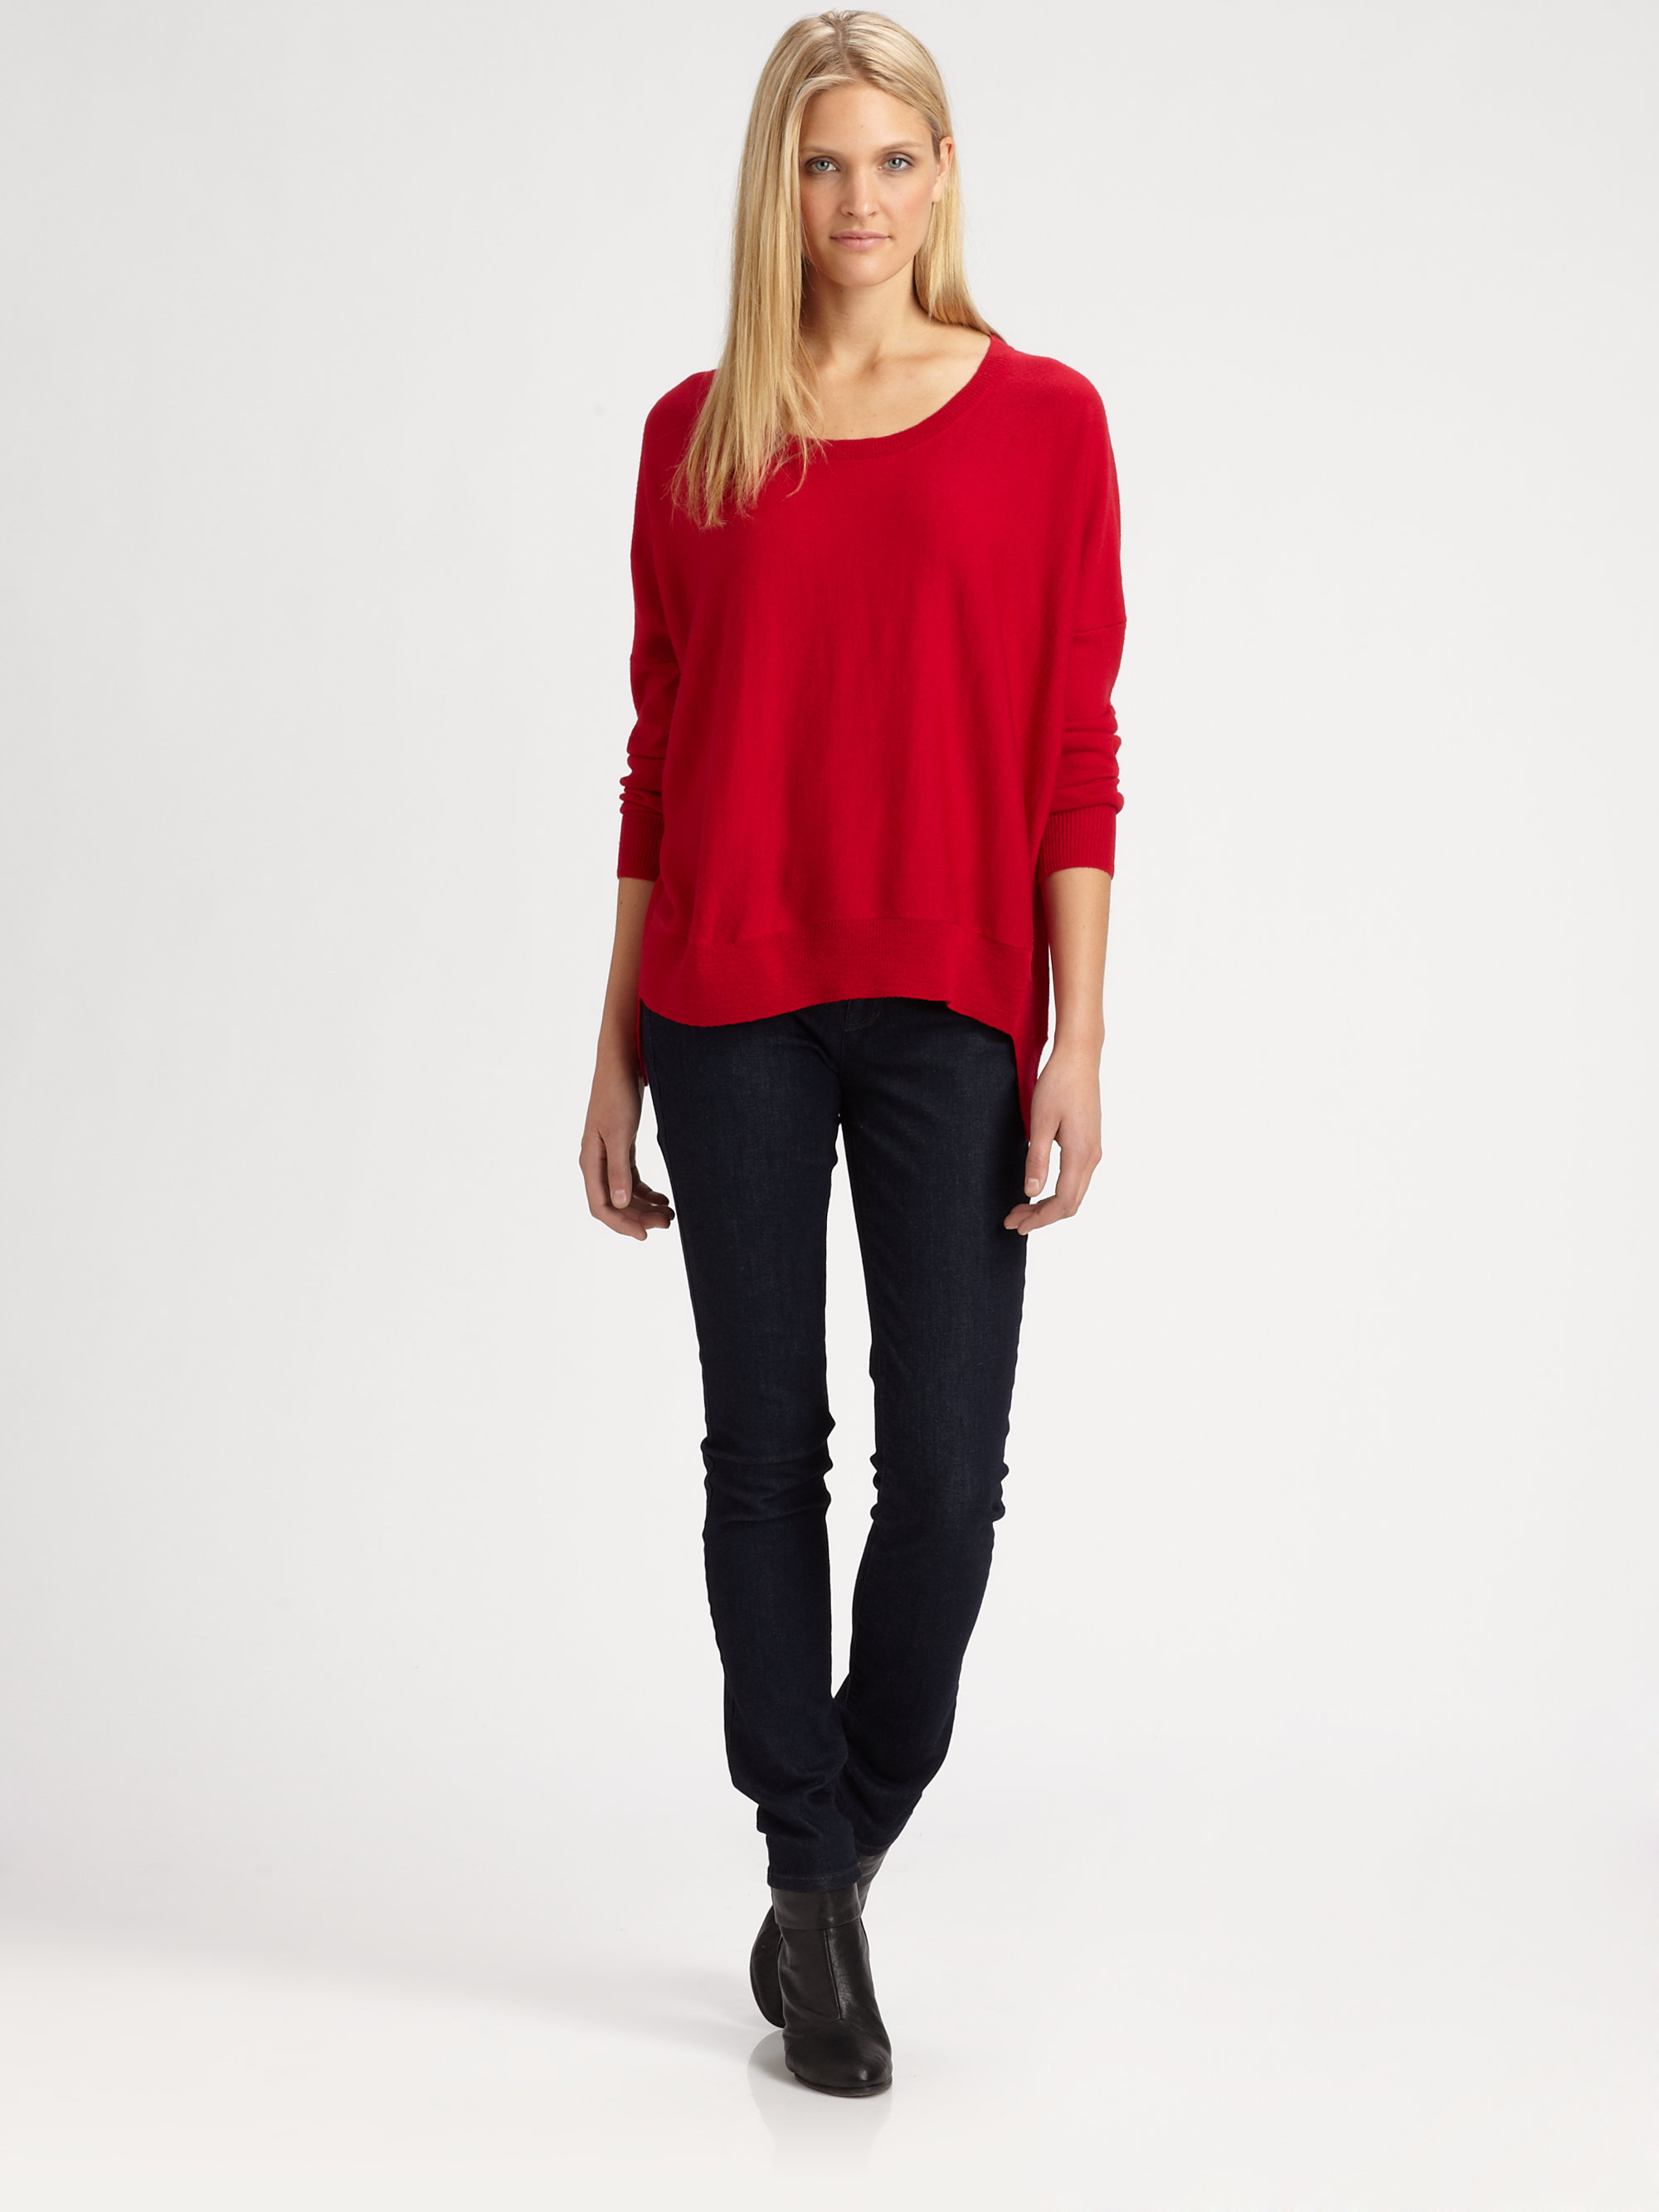 Eileen fisher Merino Wool Sweater in Red | Lyst